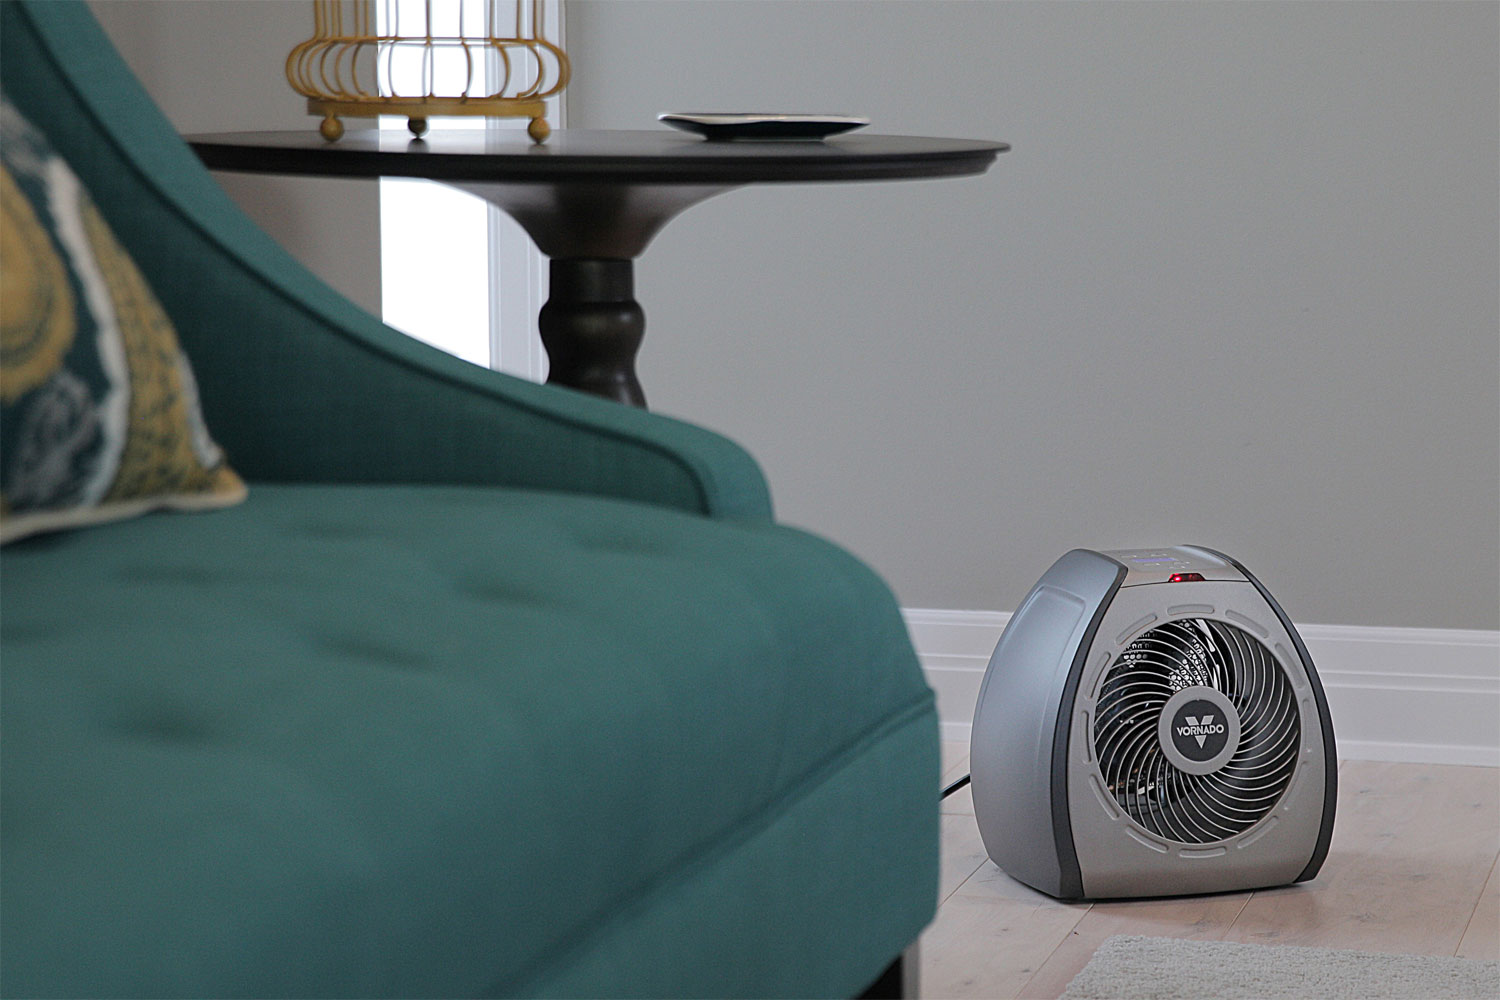 Advanced heating technology: Vornado's Whole Room Heater